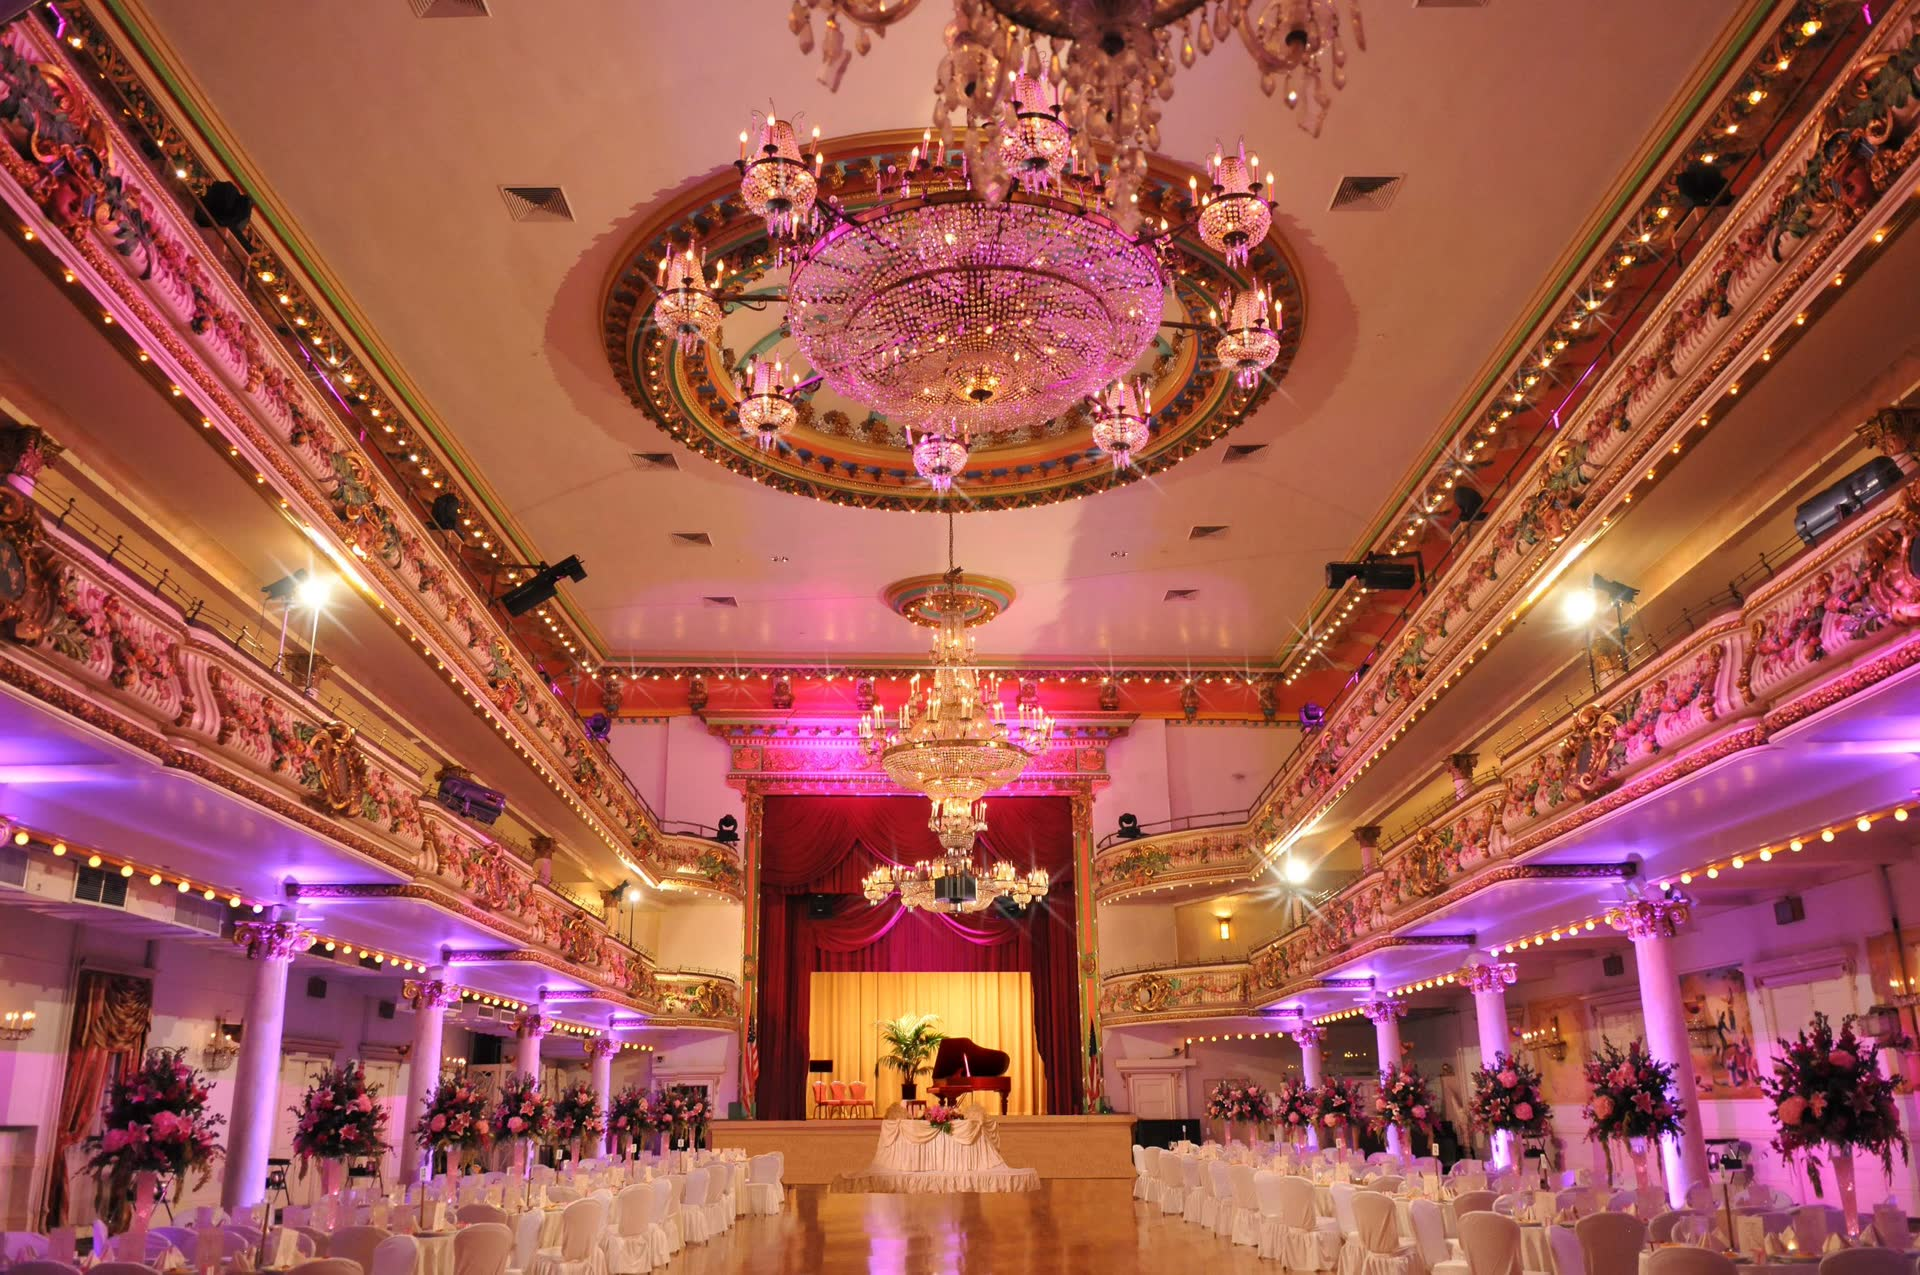 Gala spaces